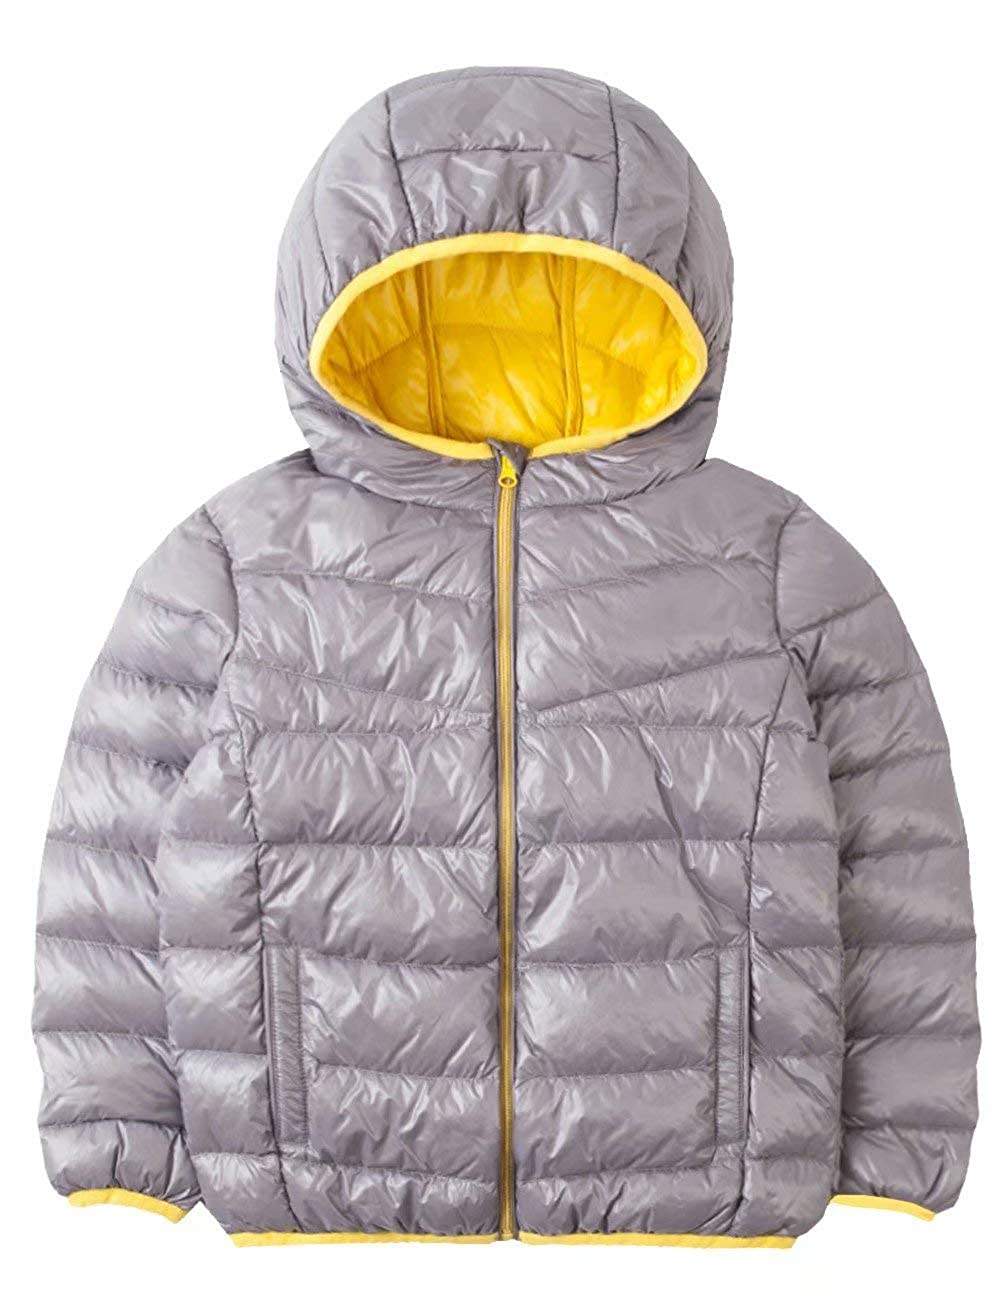 Spring&Gege Kids Lightweight Packable Puffer Down Jacket for Boys and Girls